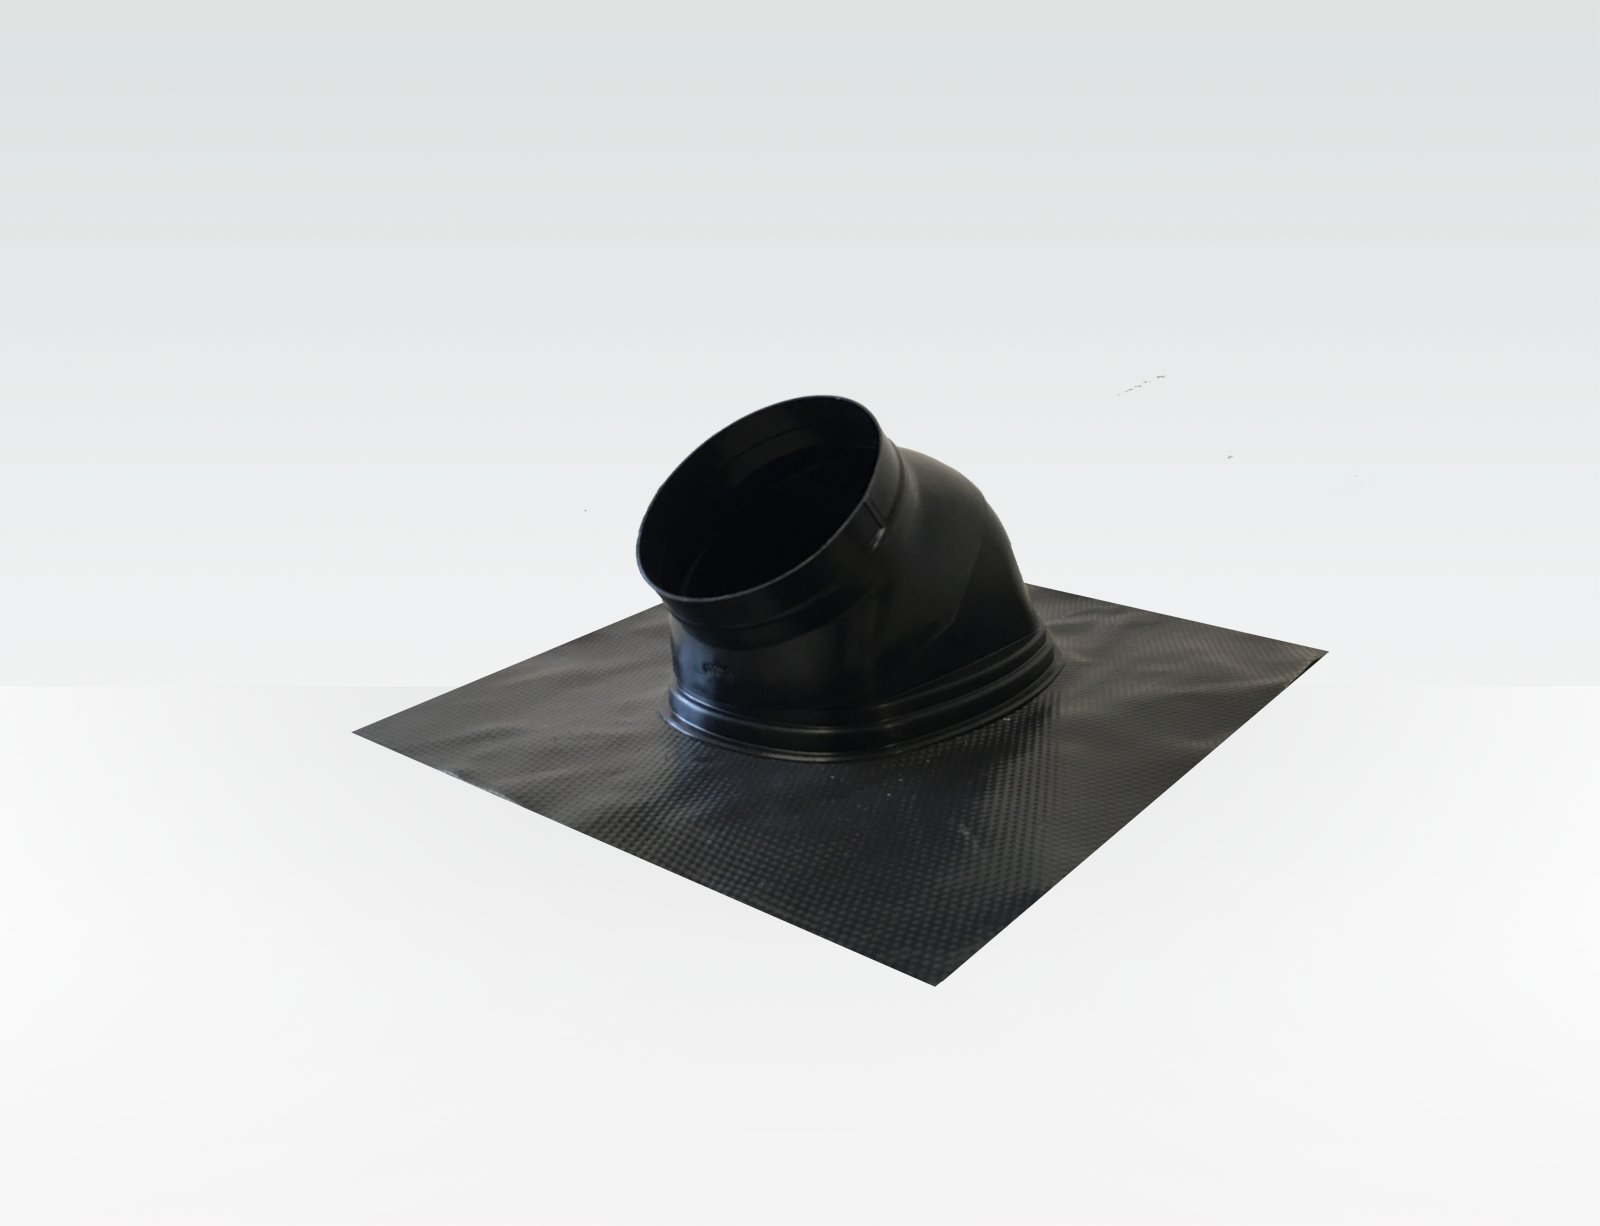 Productfoto Concentric Roof Flashing